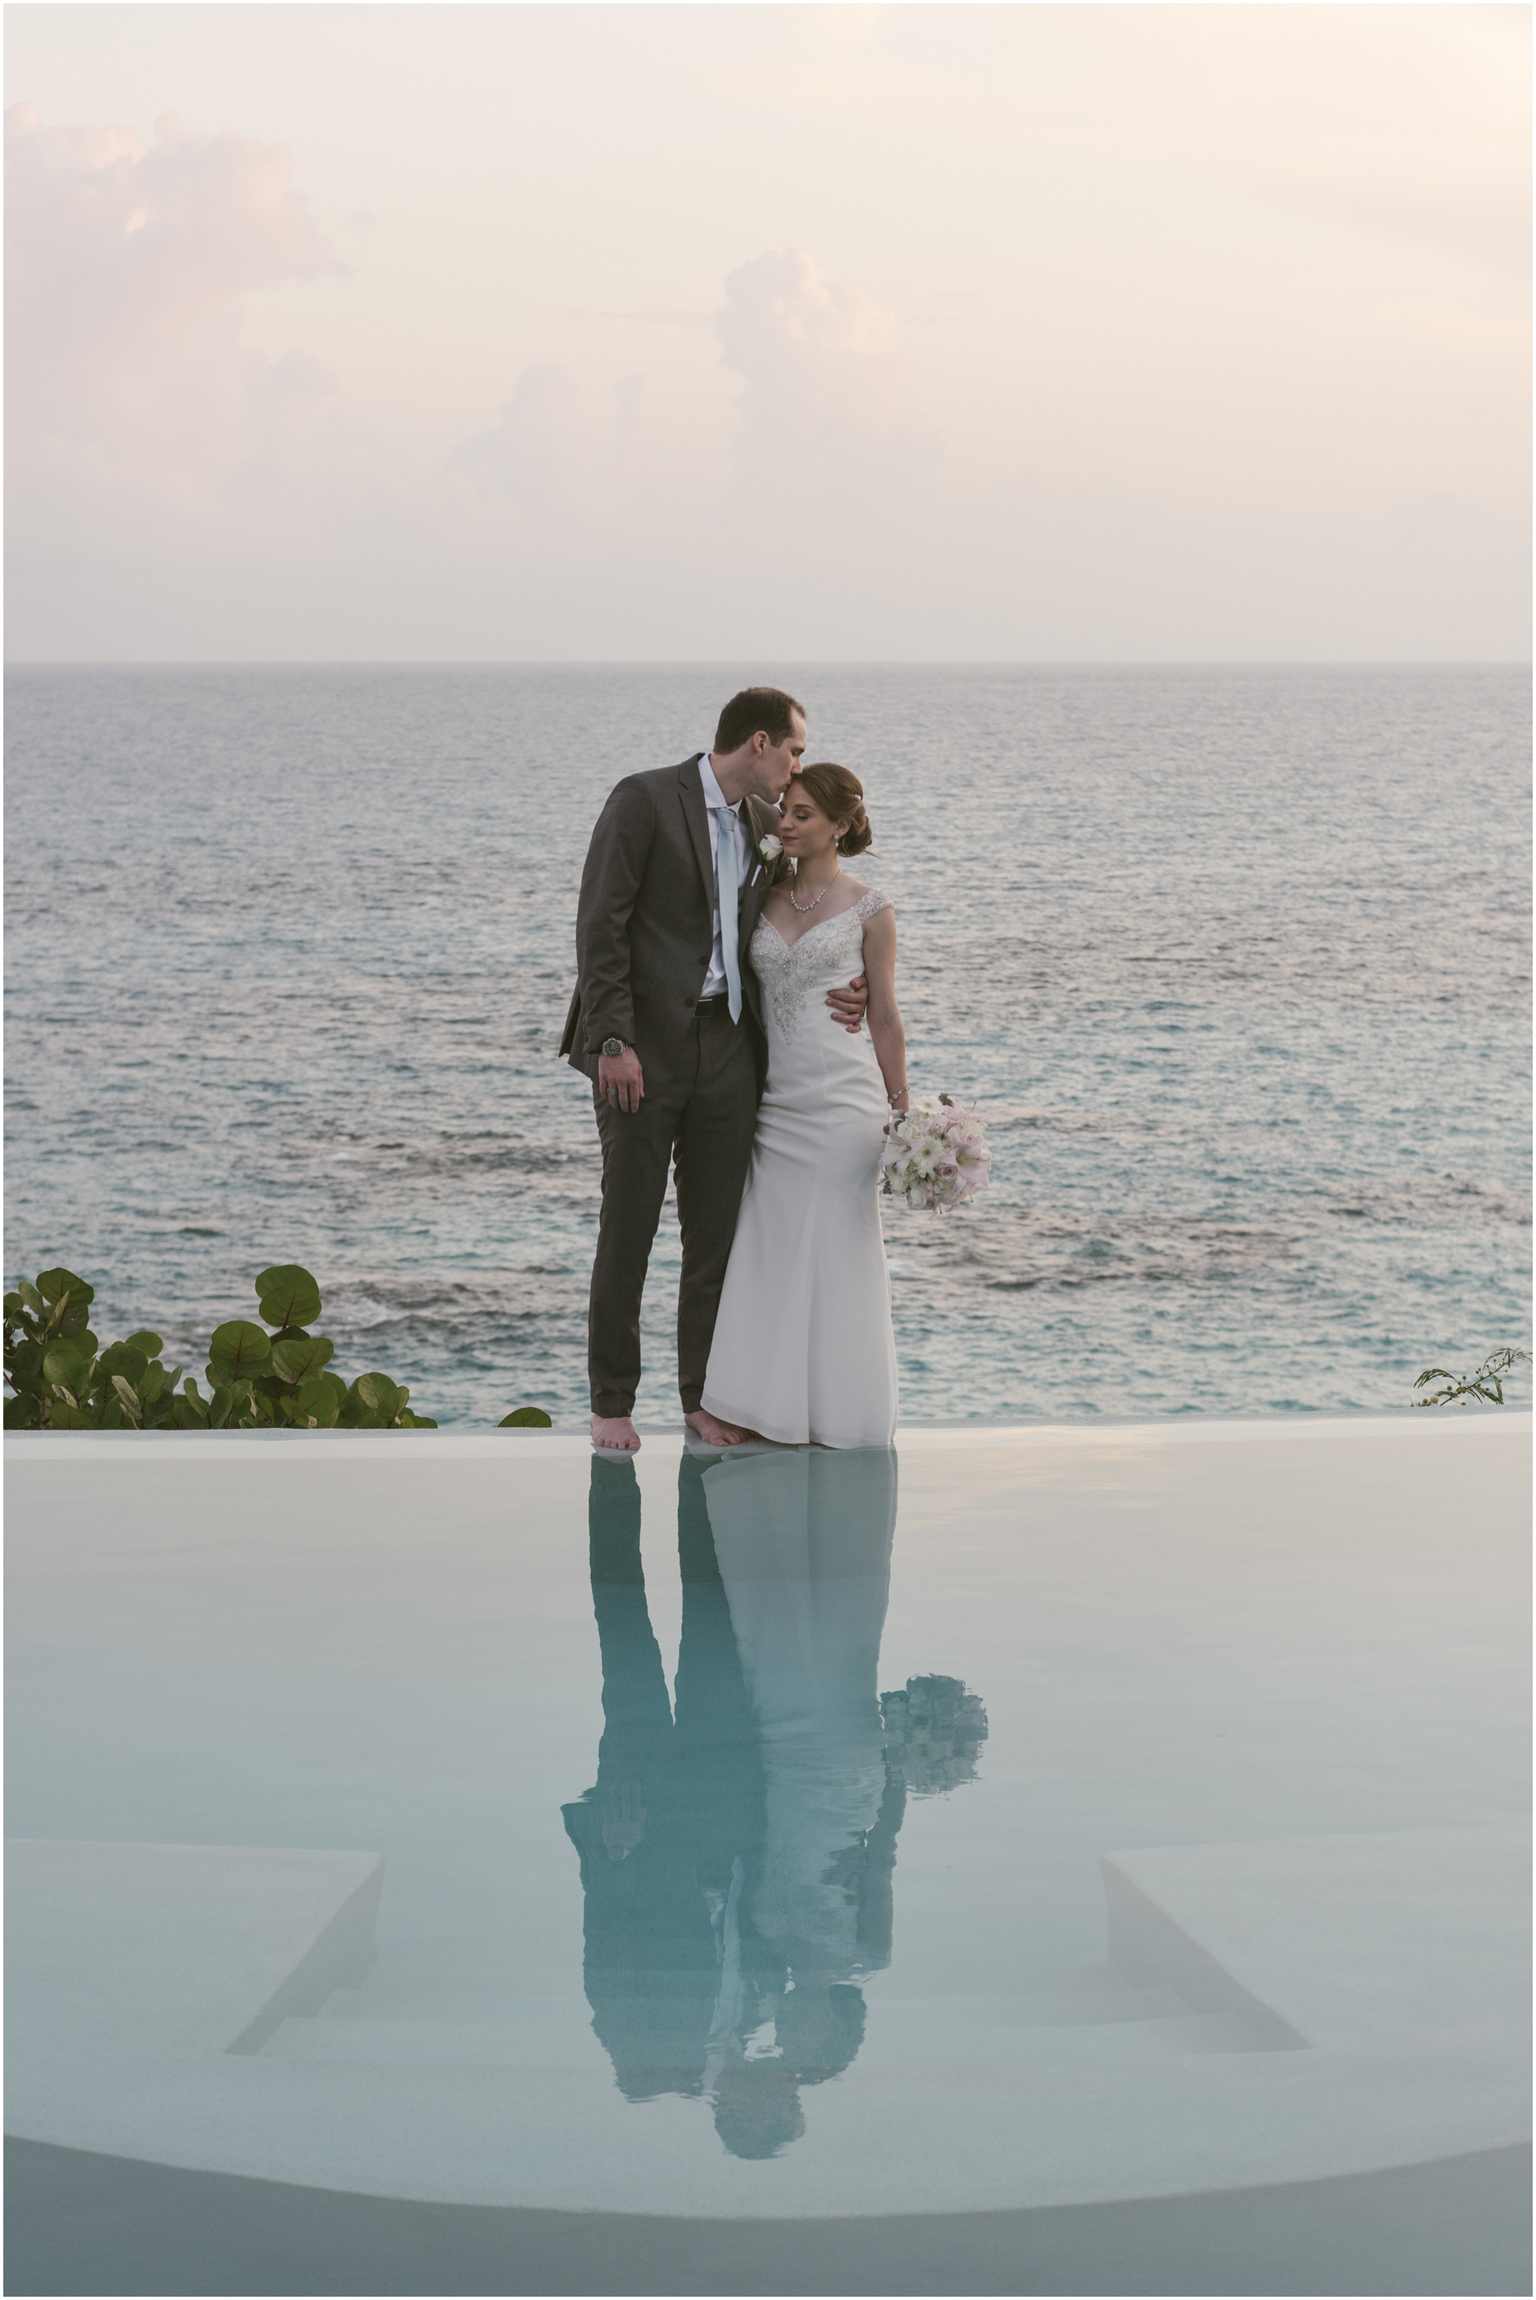 ©FianderFoto_Caribbean_Wedding_Photographer_The Reefs_Bermuda_Lauren_Erik_087.jpg